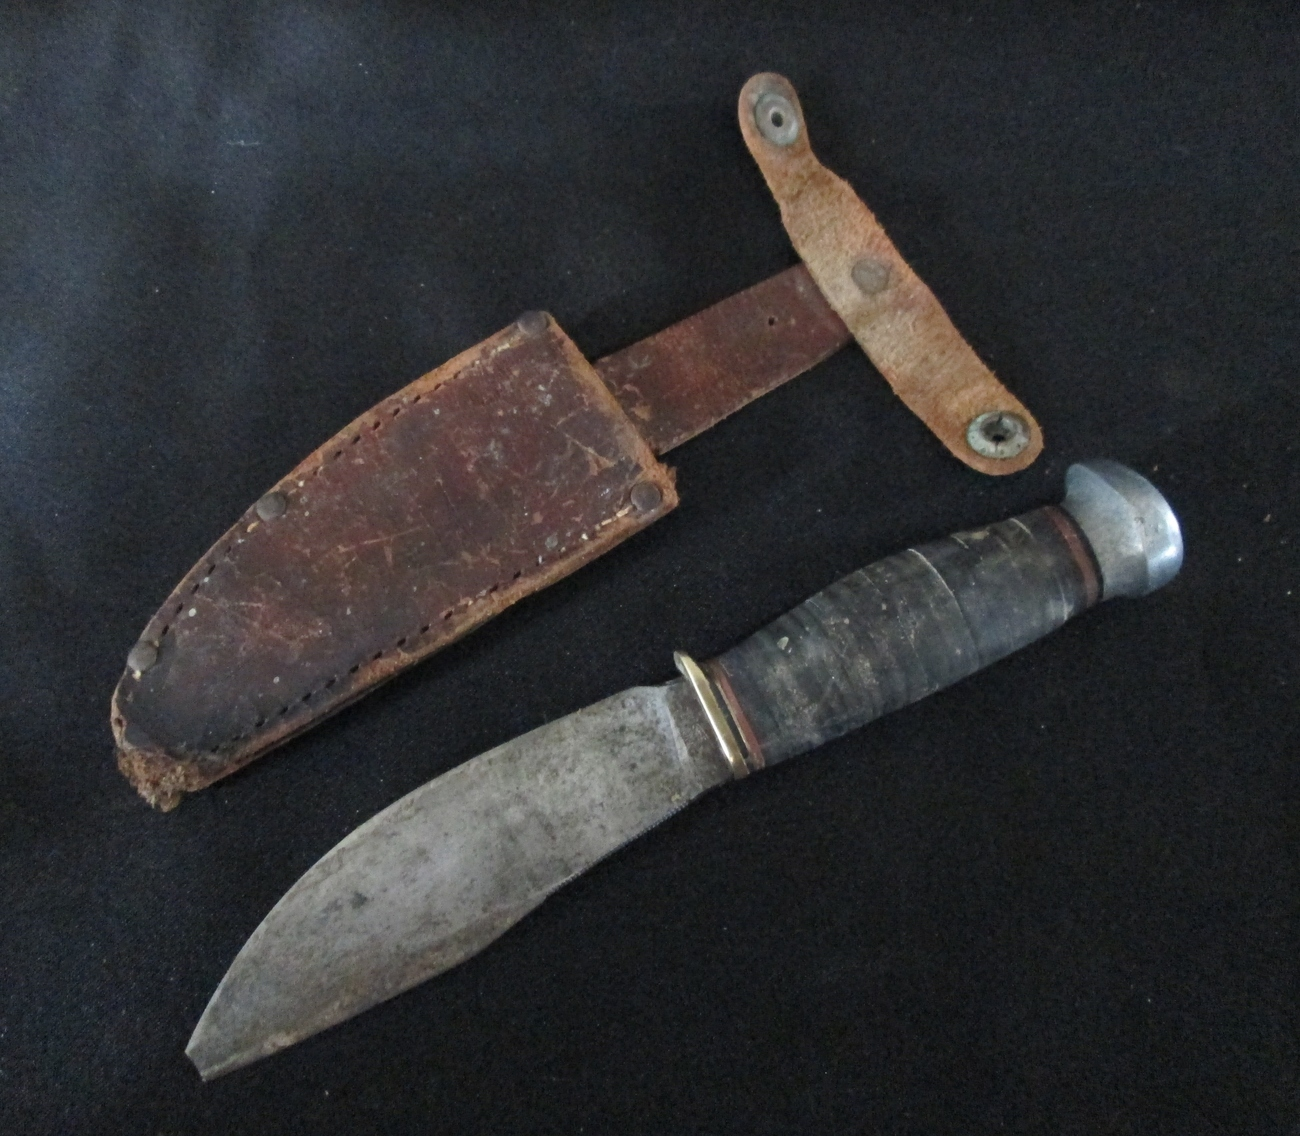 Vintage Marbles Knife and Sheath.  Pat. 1916. Gladstone, Mich. Marble Arms Corp.